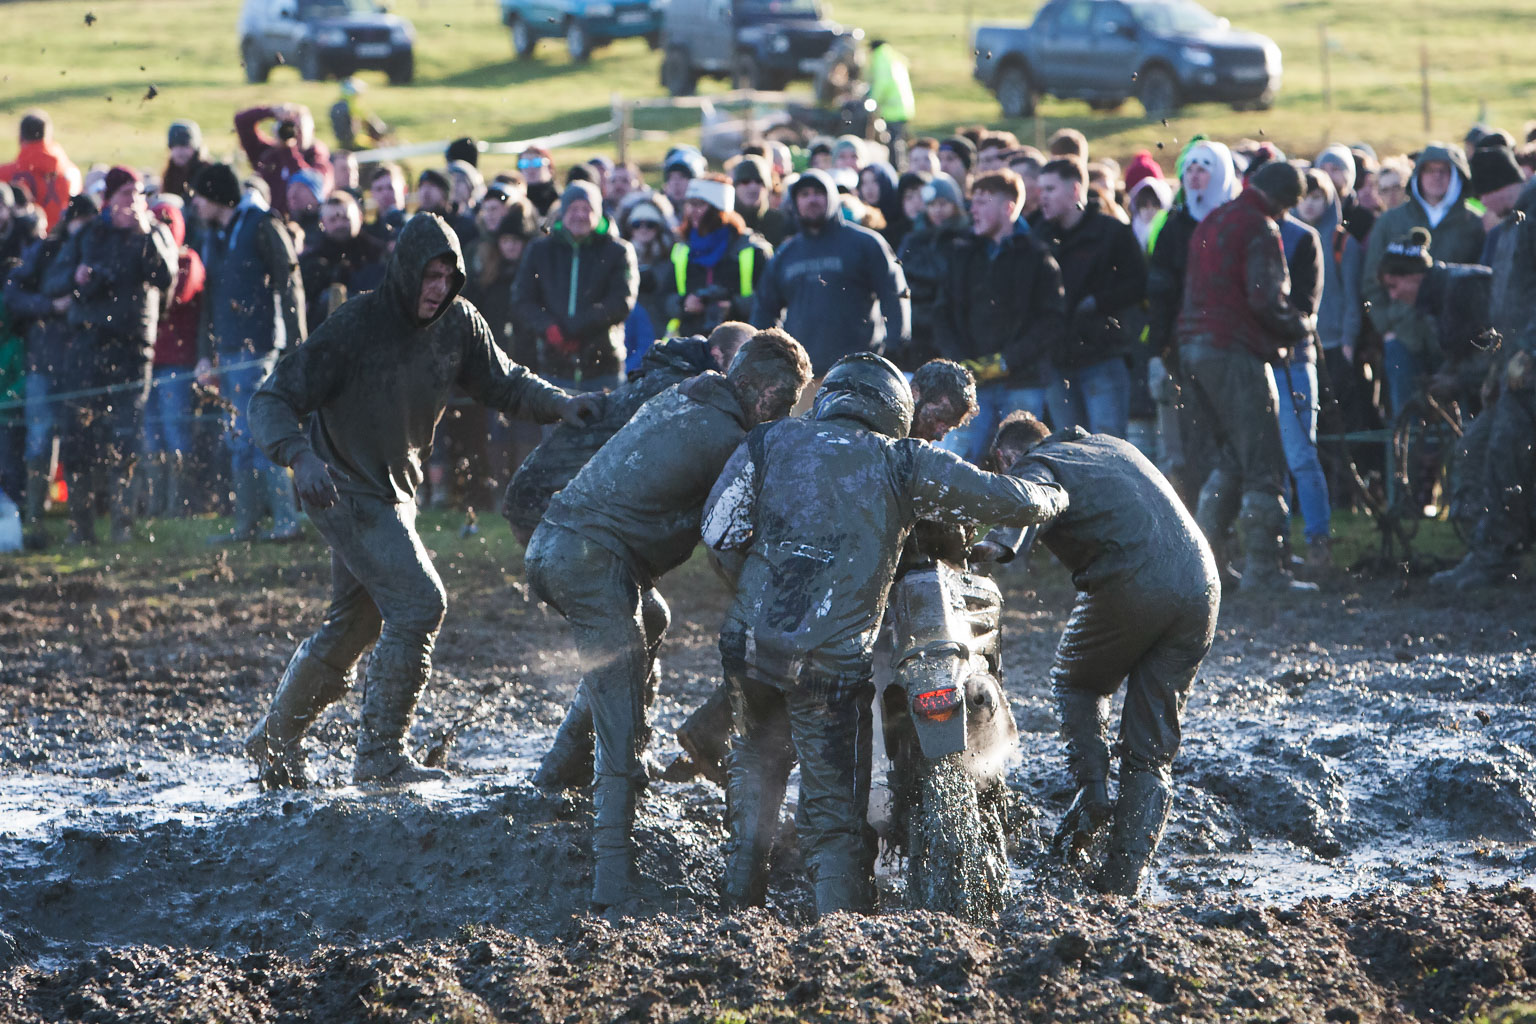 Always a muddy mess at the Woolly!